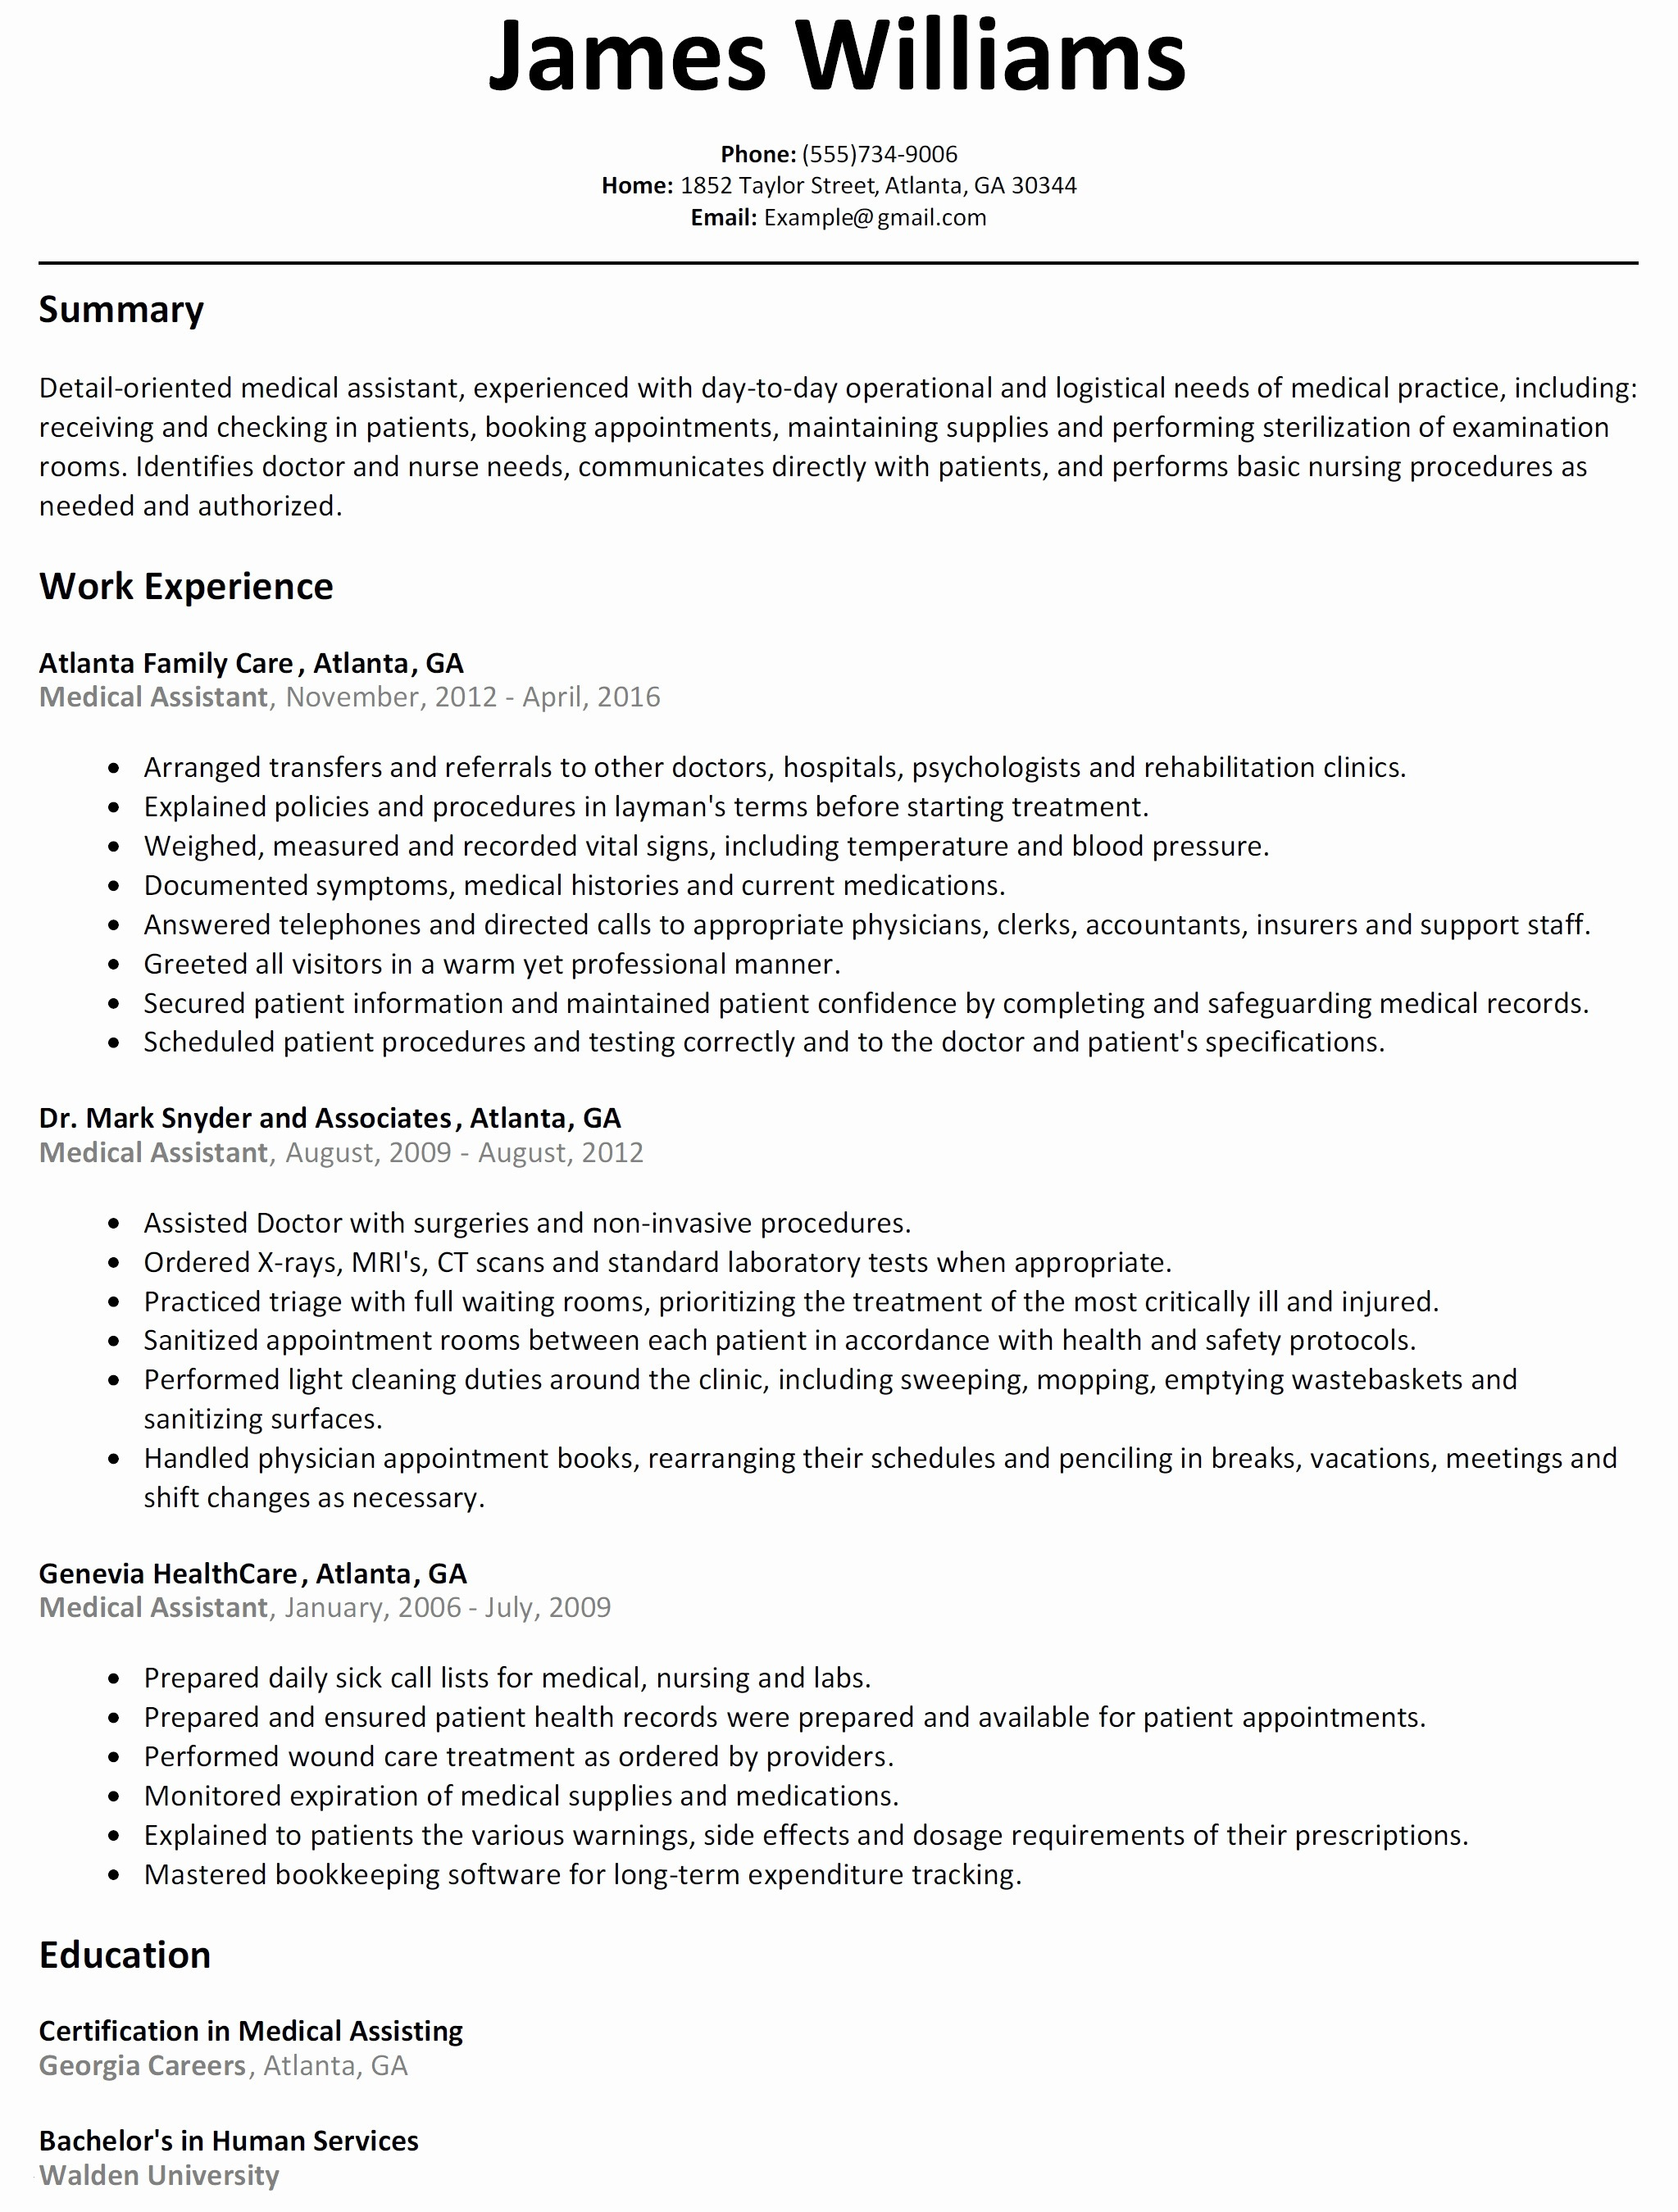 child care resume template example-Child Care Resume Unique Resume for Child Care Luxury Resume Template Free Word New Od 15-d